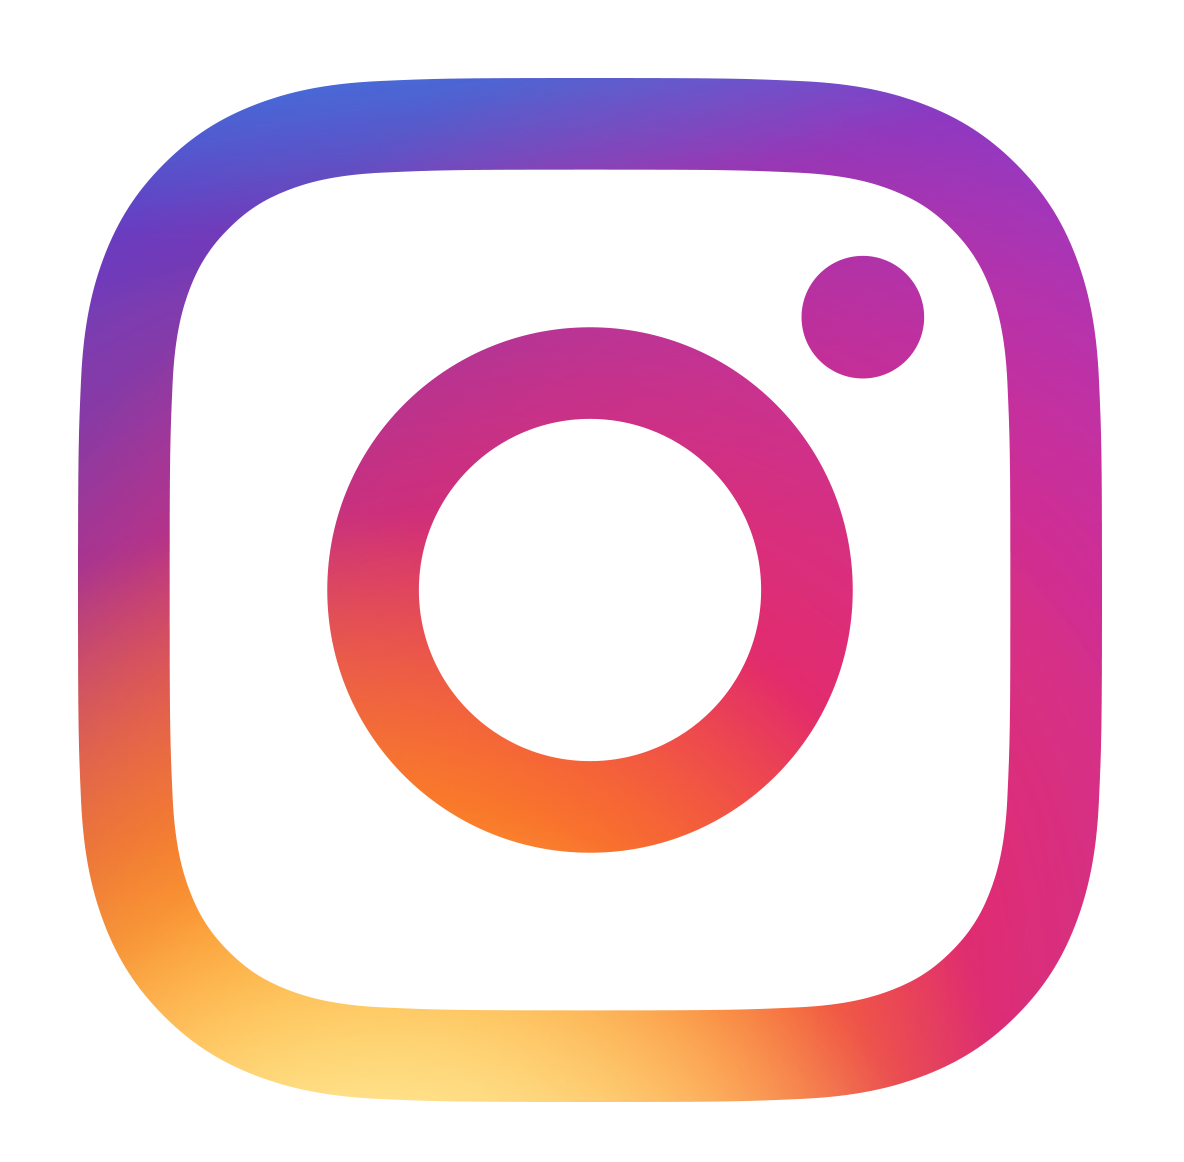 Colorful instagram logo with link to store instagram page